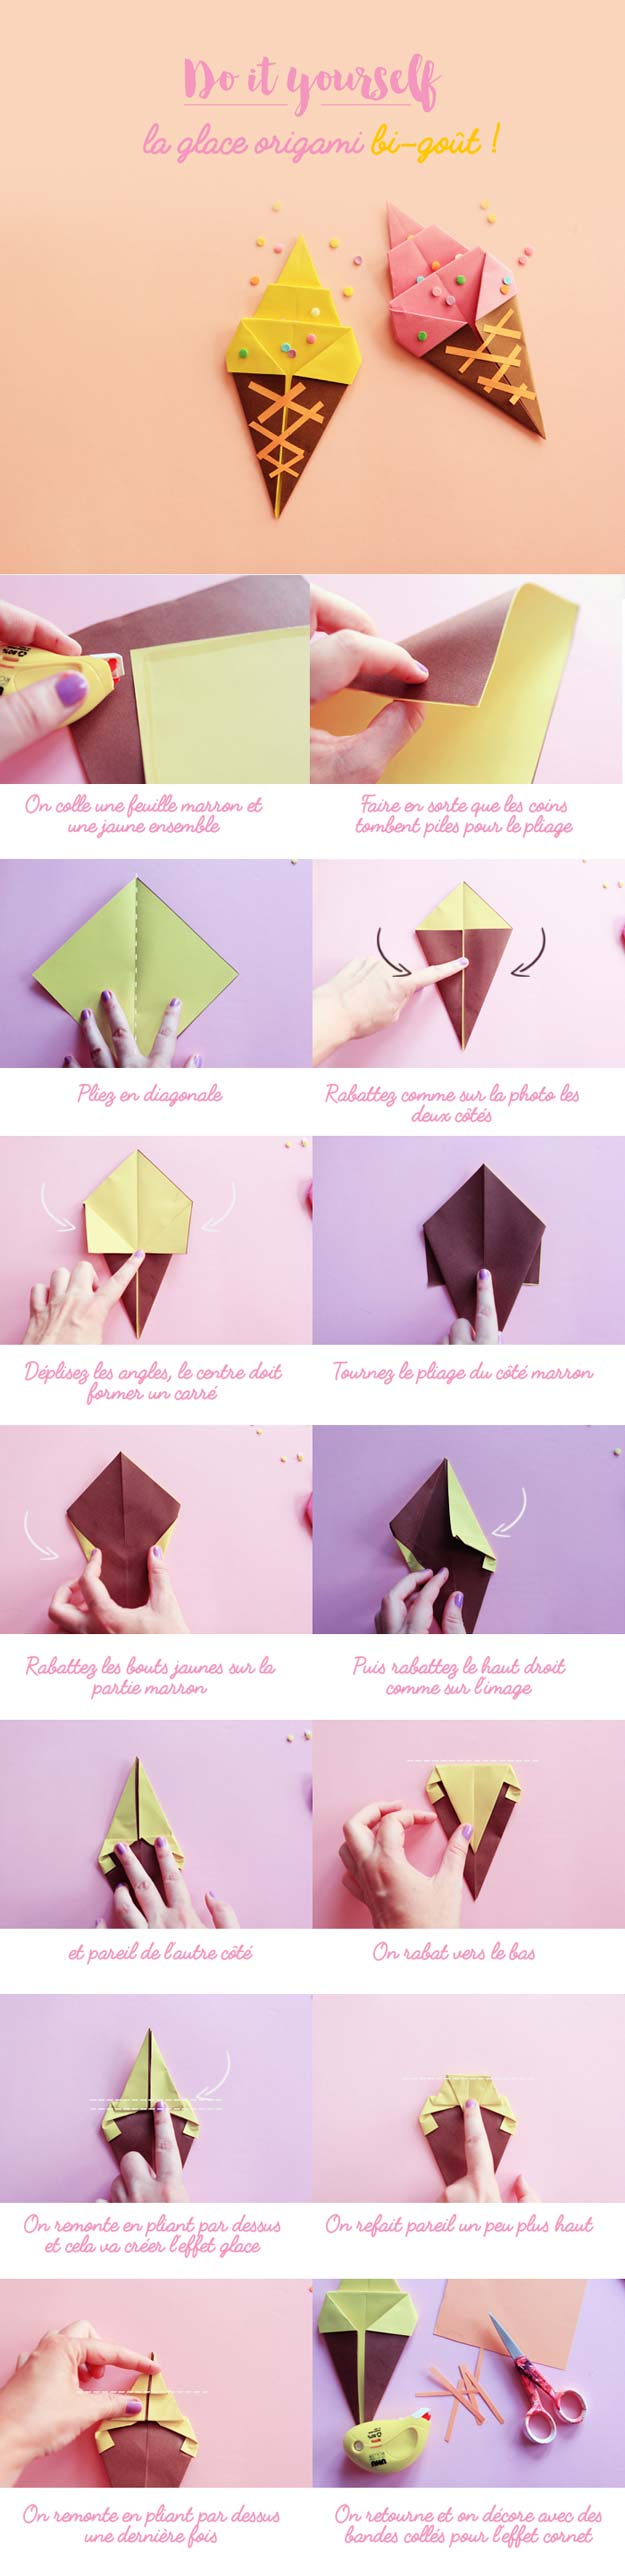 40 Best DIY Origami Projects To Keep Your Entertained Today | 2552x625